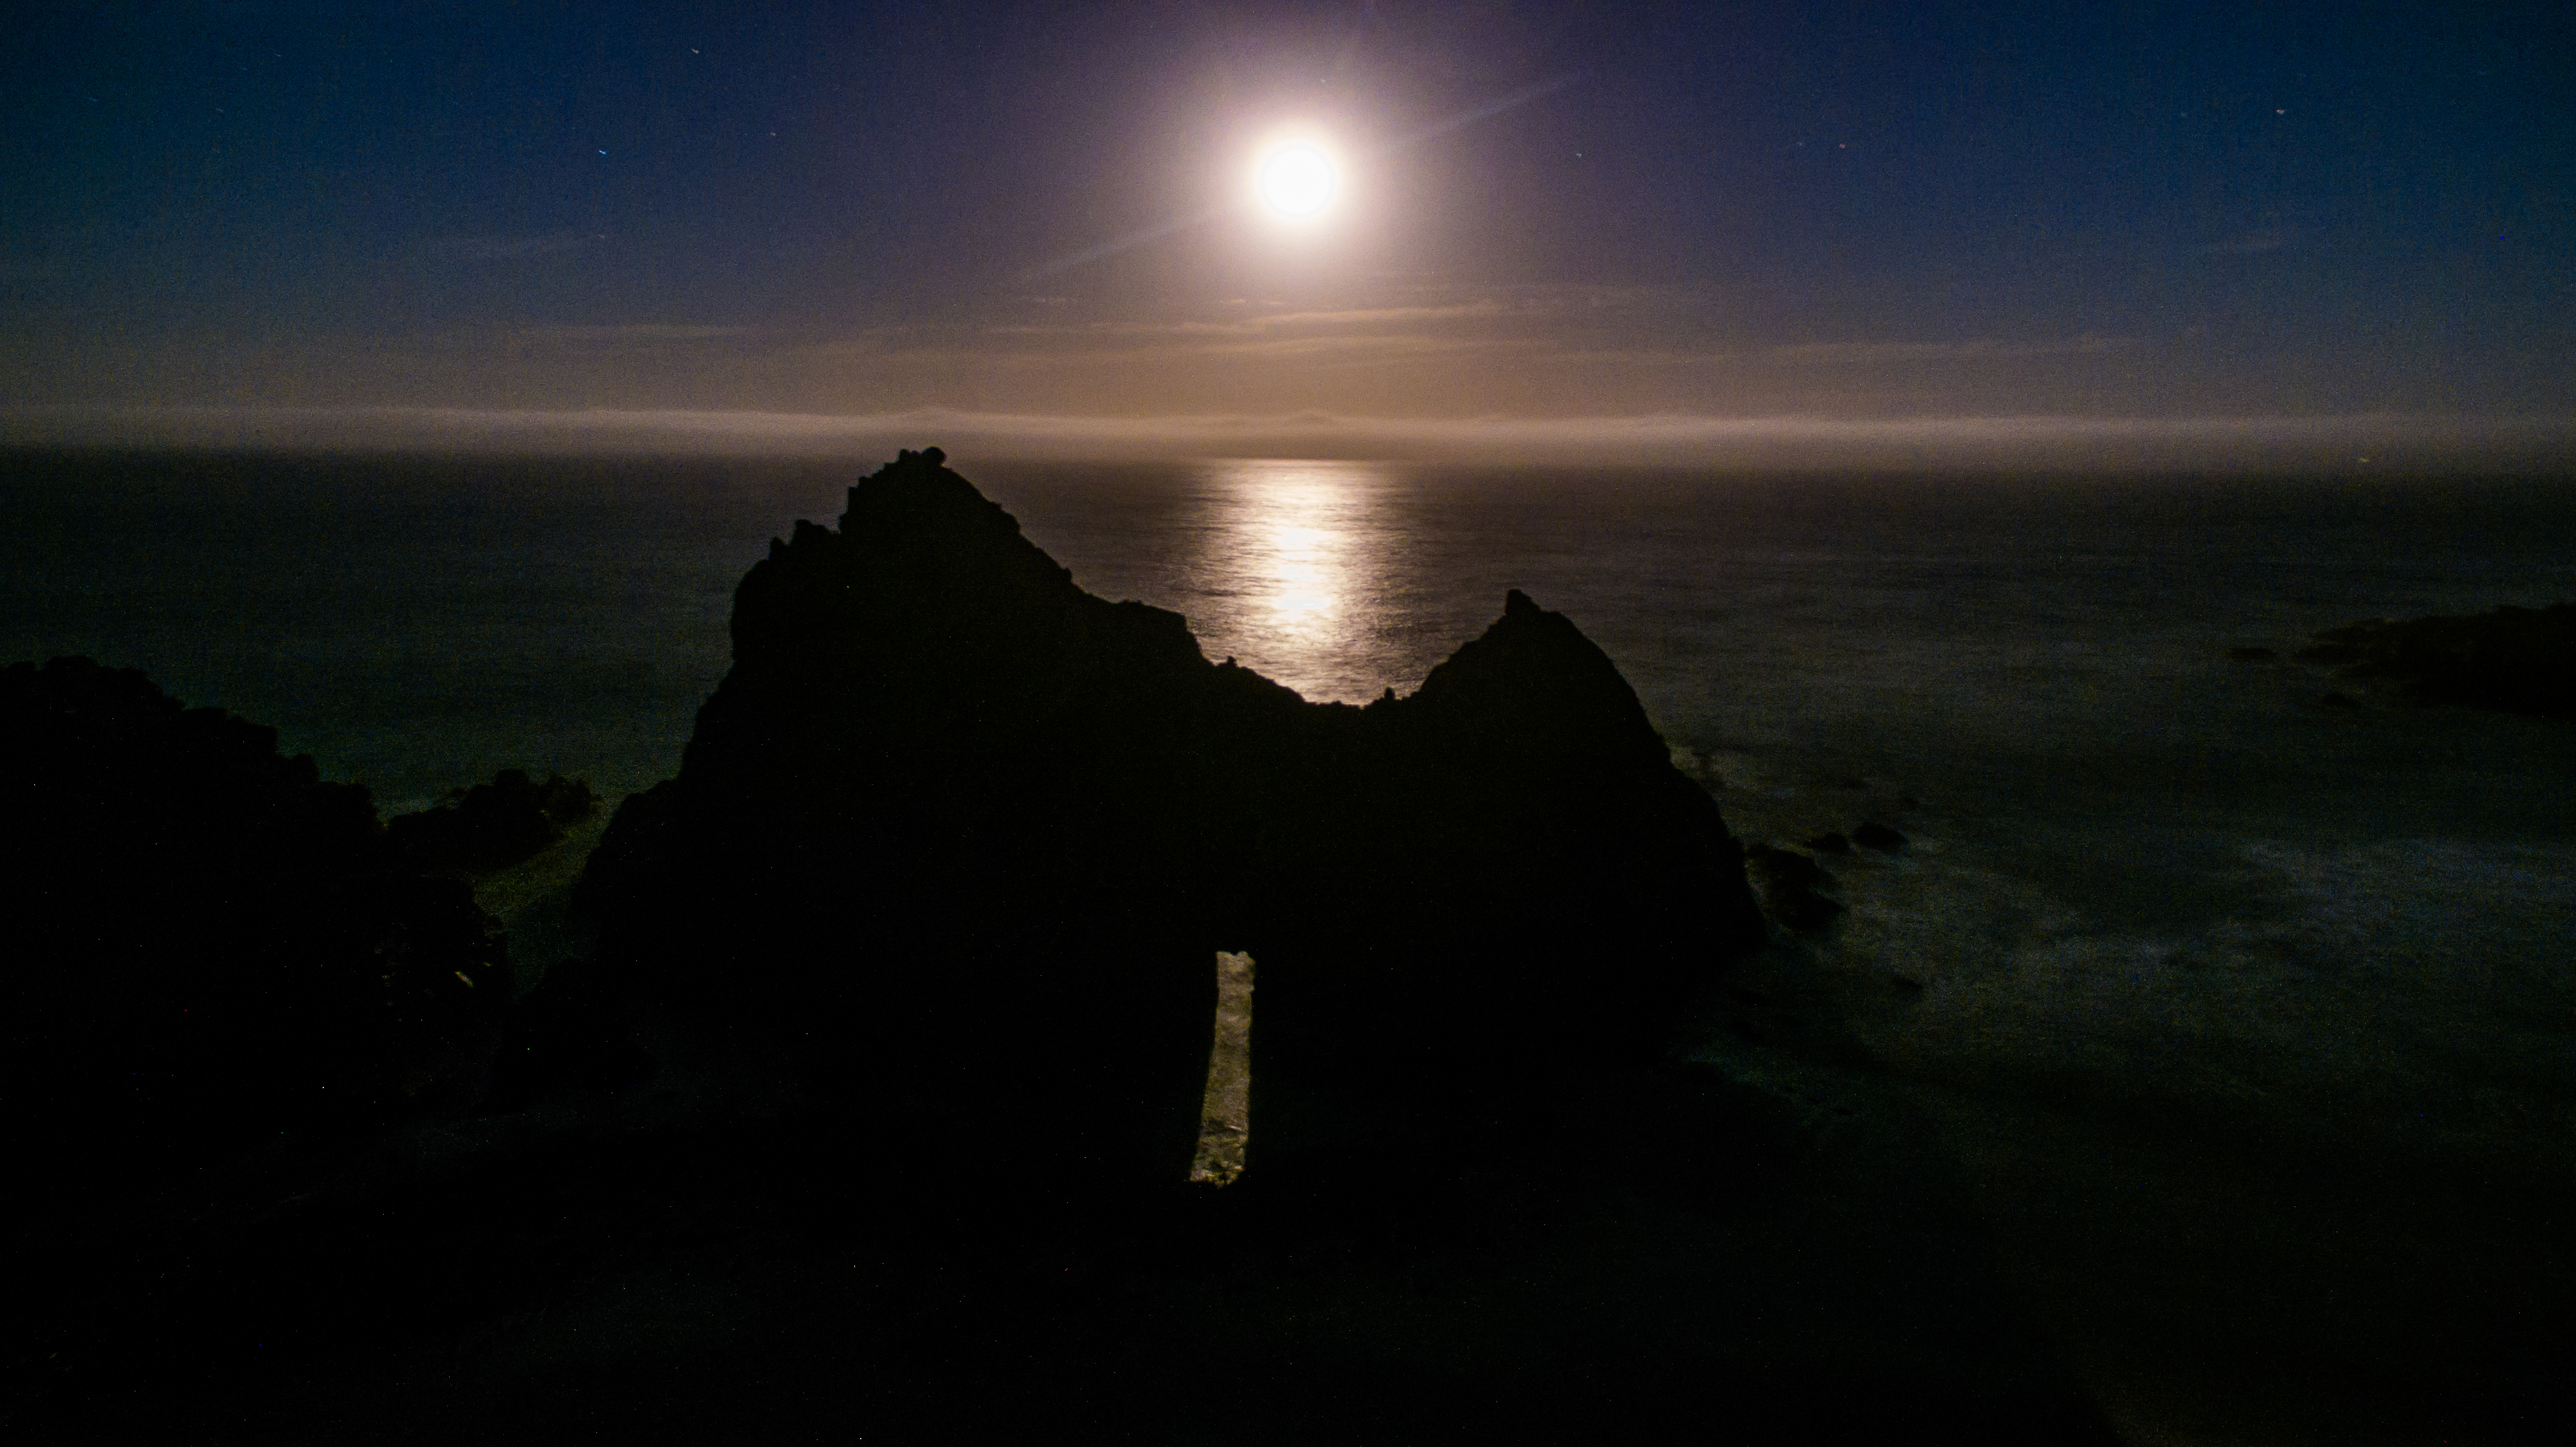 An 8 Second Aerial Exposure From A Drone